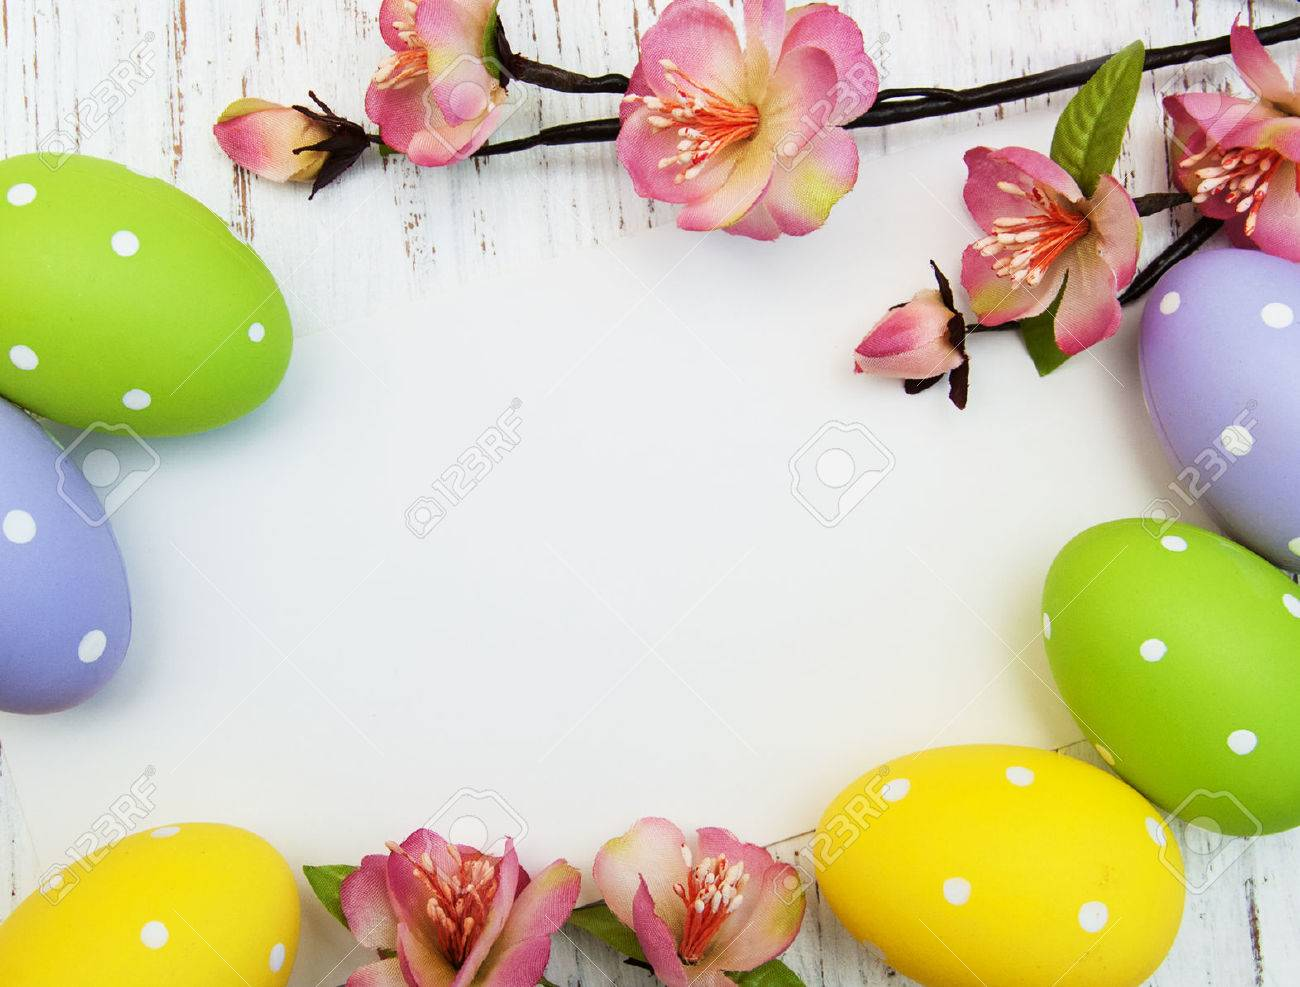 Easter Background With Easter Eggs And Flowers Stock Photo 1300x987